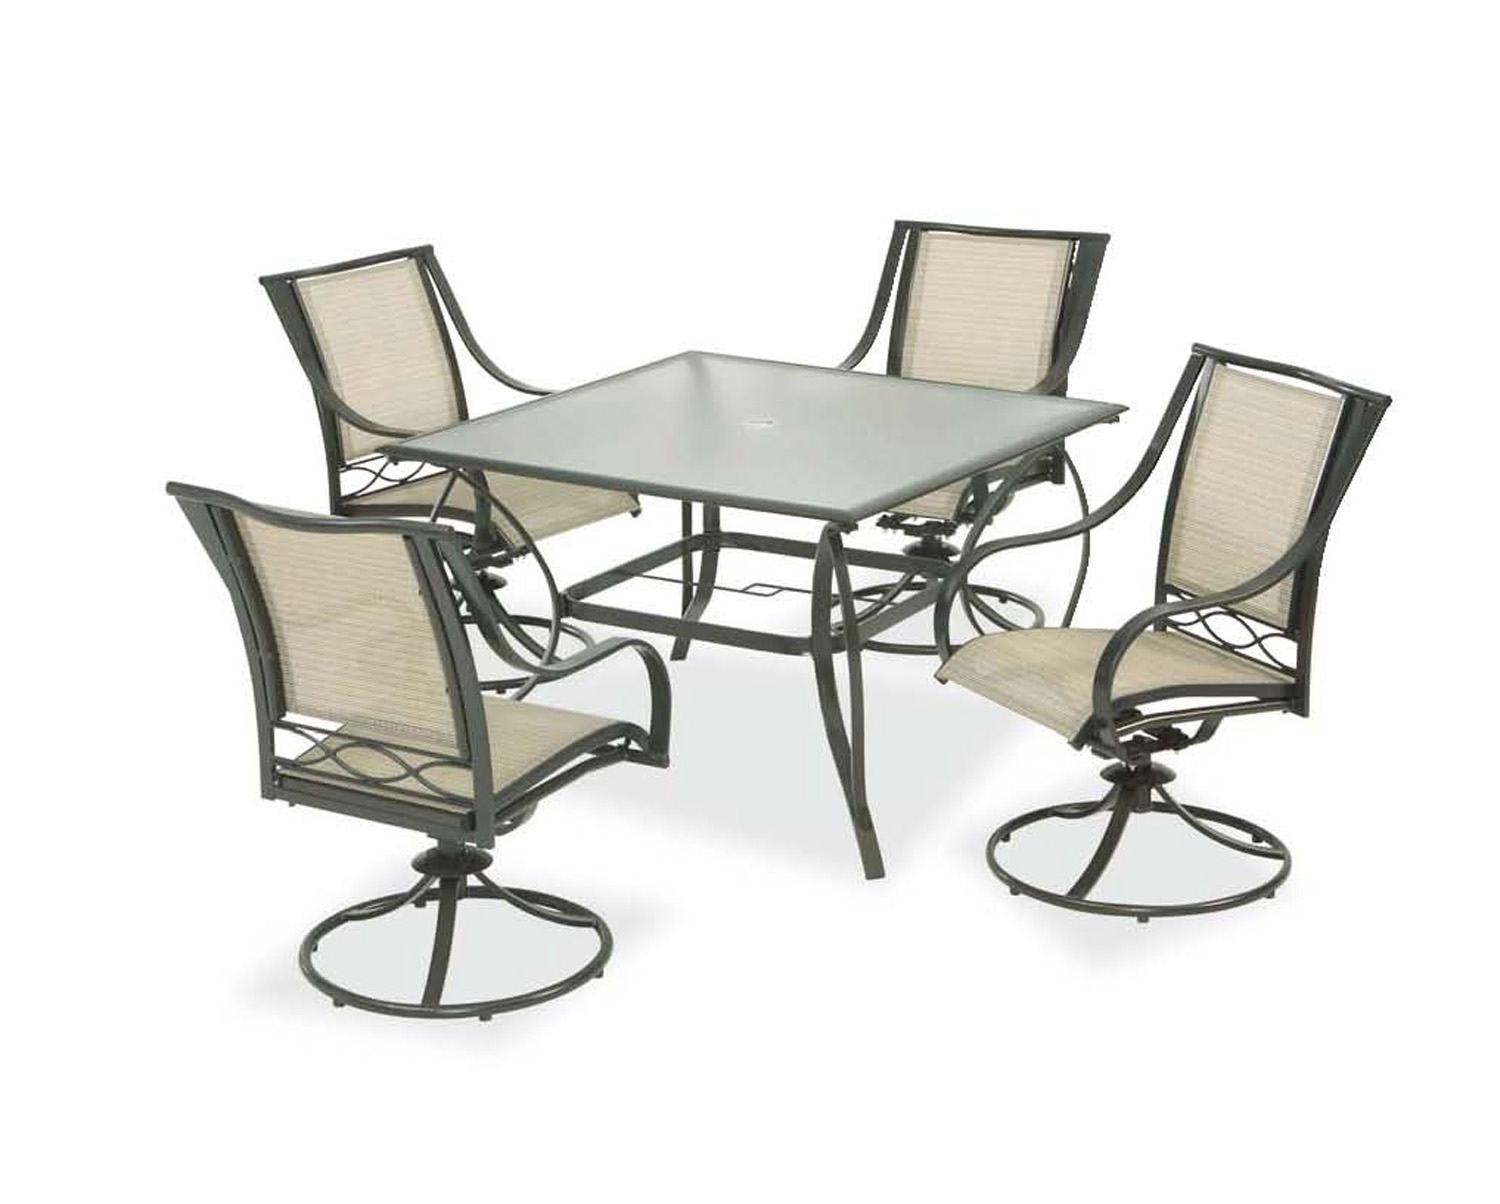 Casual Living Worldwide Recalls Swivel Patio Chairs Due to ... on Casual Living Patio id=32734